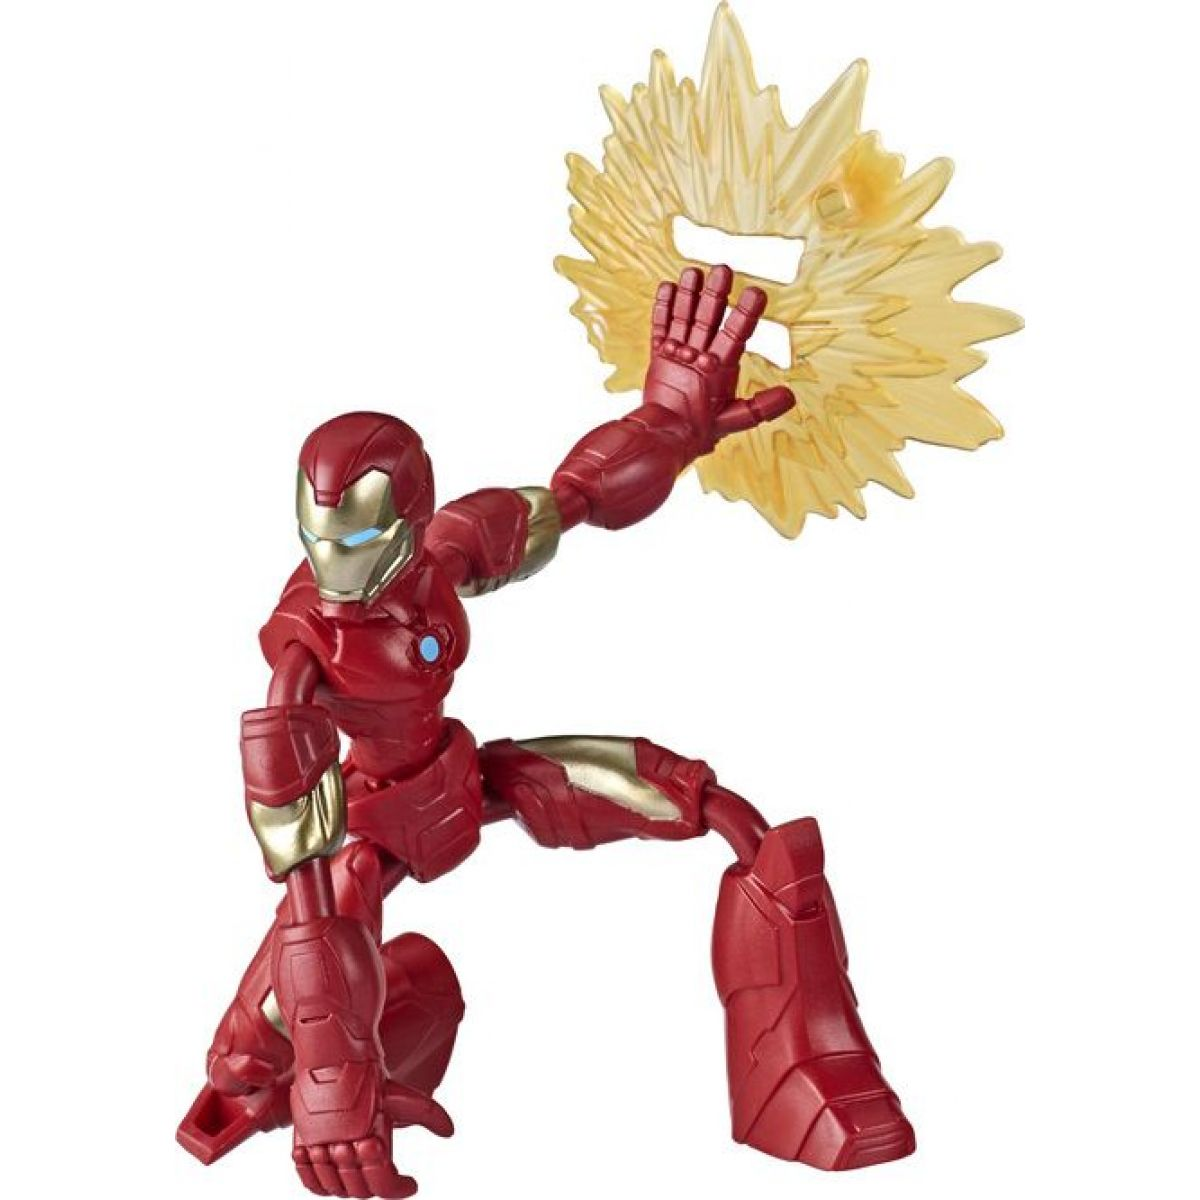 Hasbro Avengers figurka Bend and Flex 15 cm Iron Man